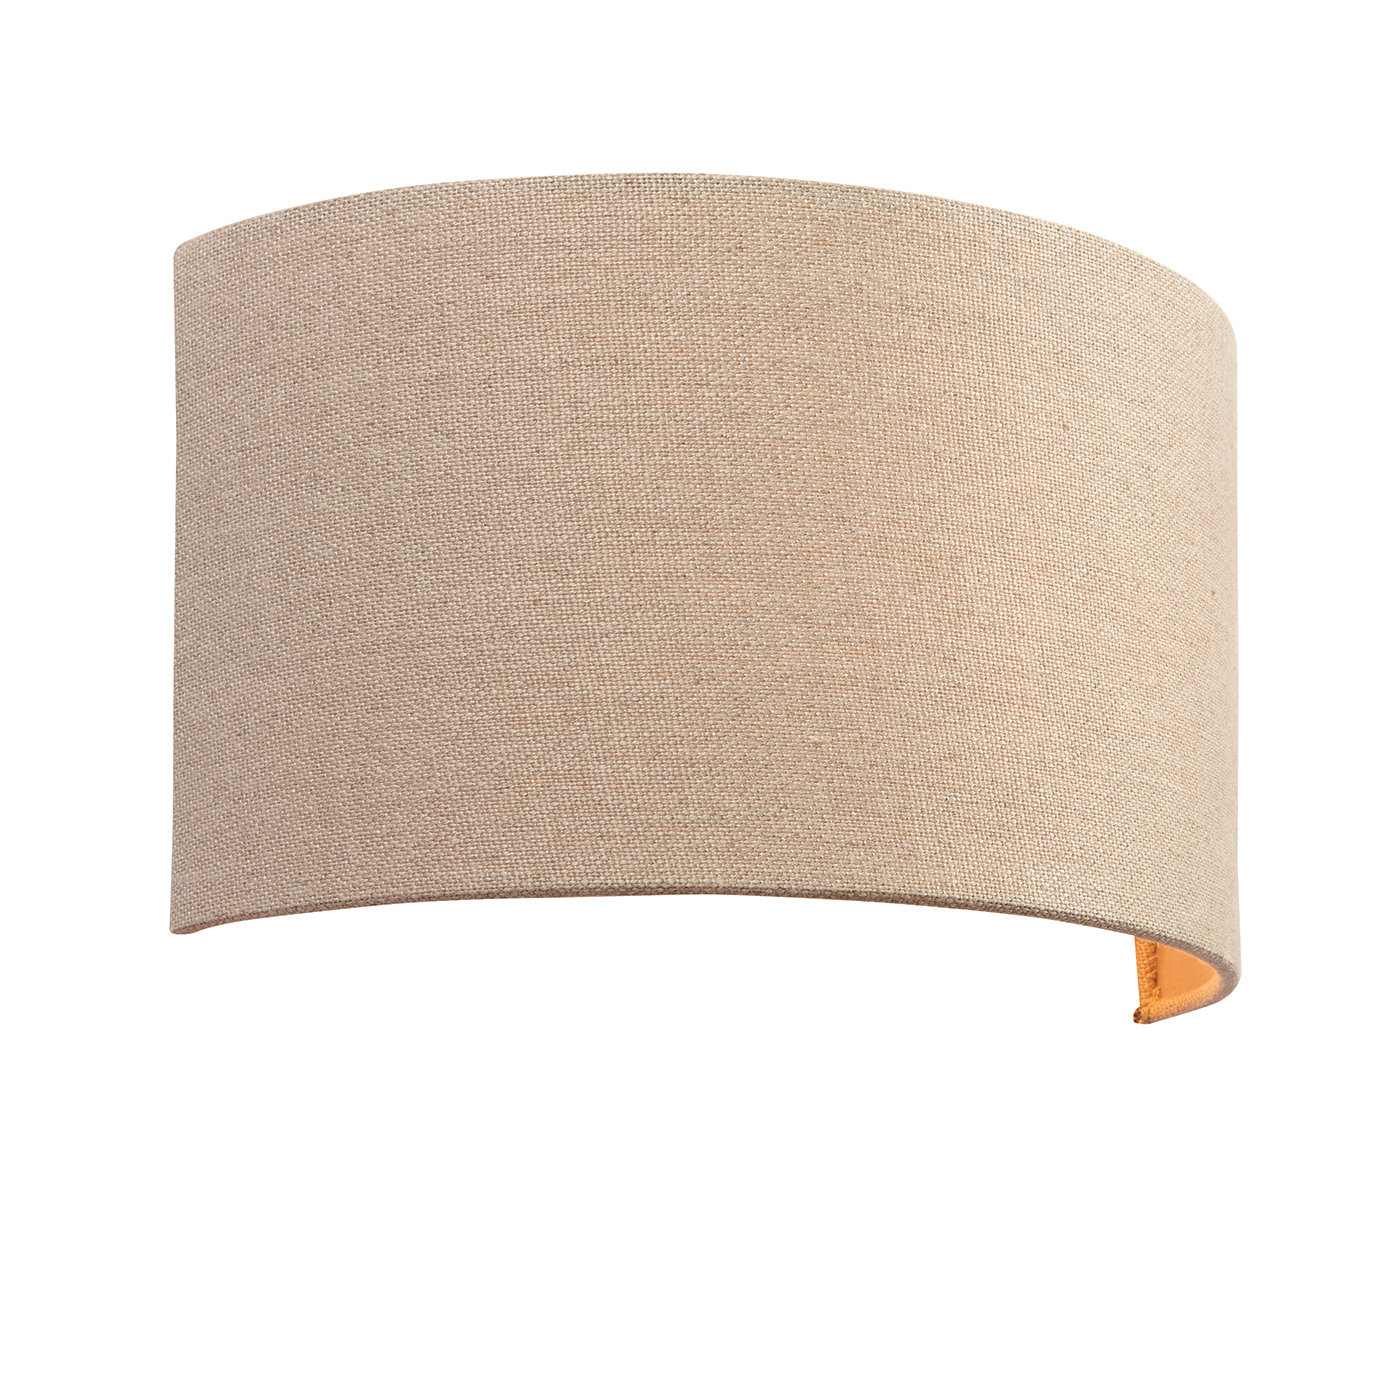 Endon Obi 1lt wall light 40W Natural linen fabric & natural polyester cotton Thumbnail 1